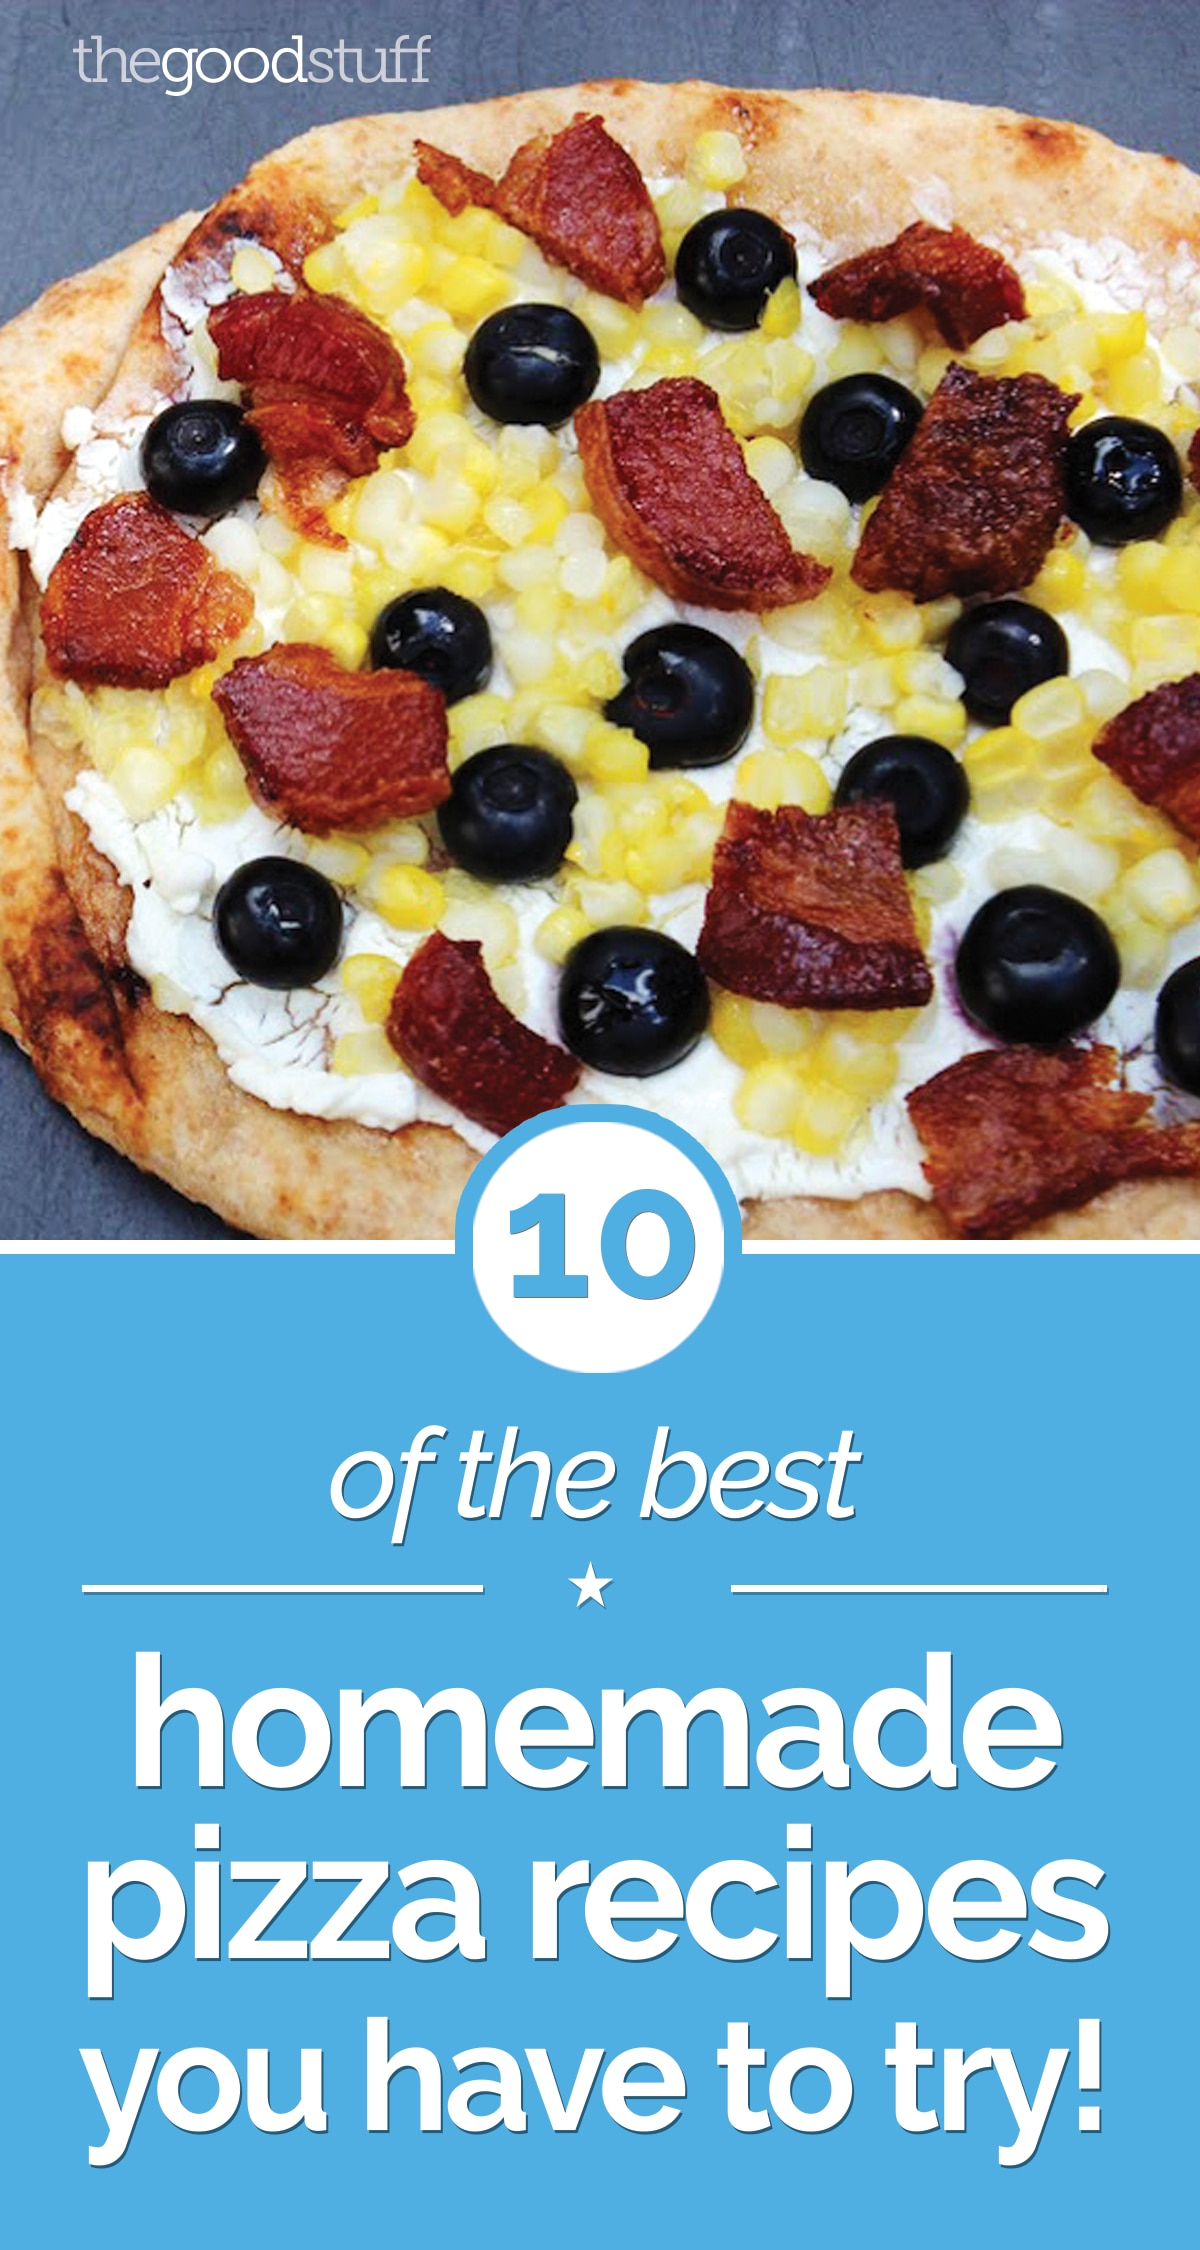 11 of the Best Homemade Pizza Recipes You Have to Try! | thegoodstuff